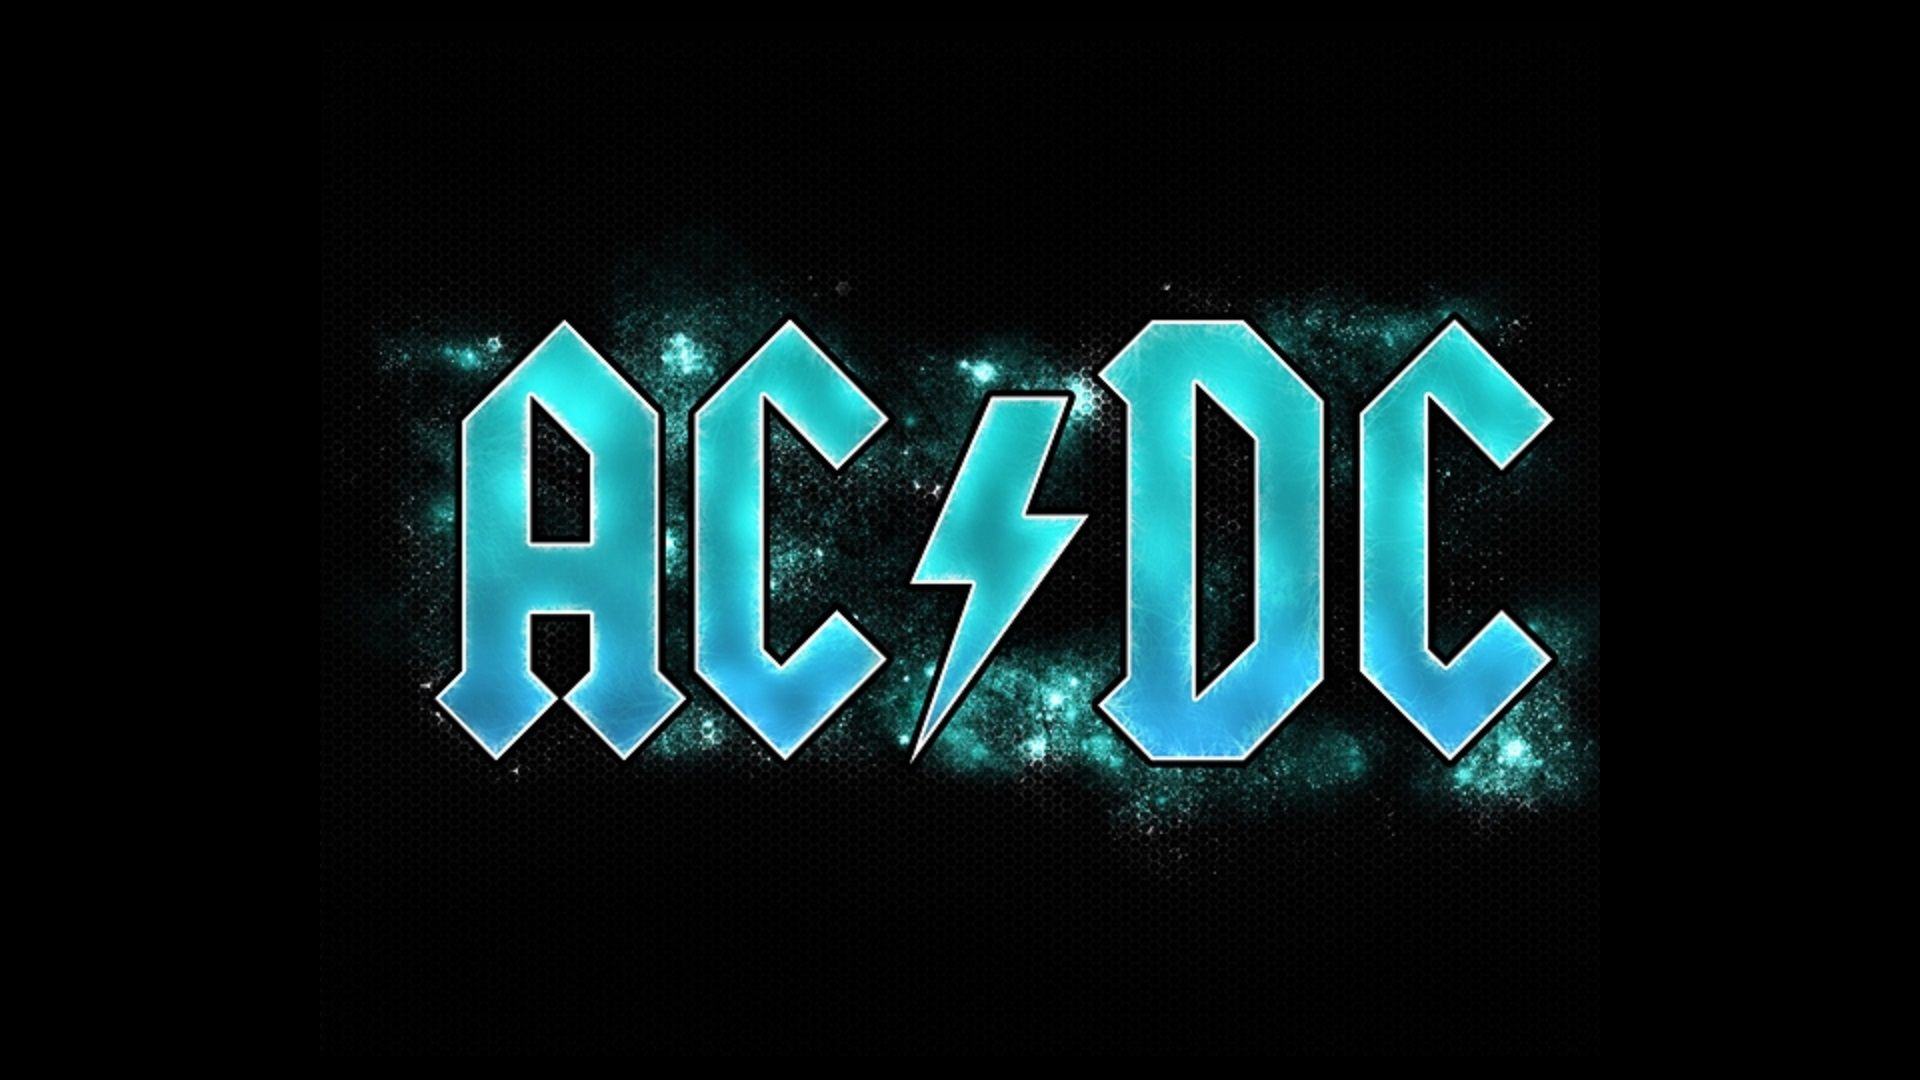 Acdc wallpaper 1366x768